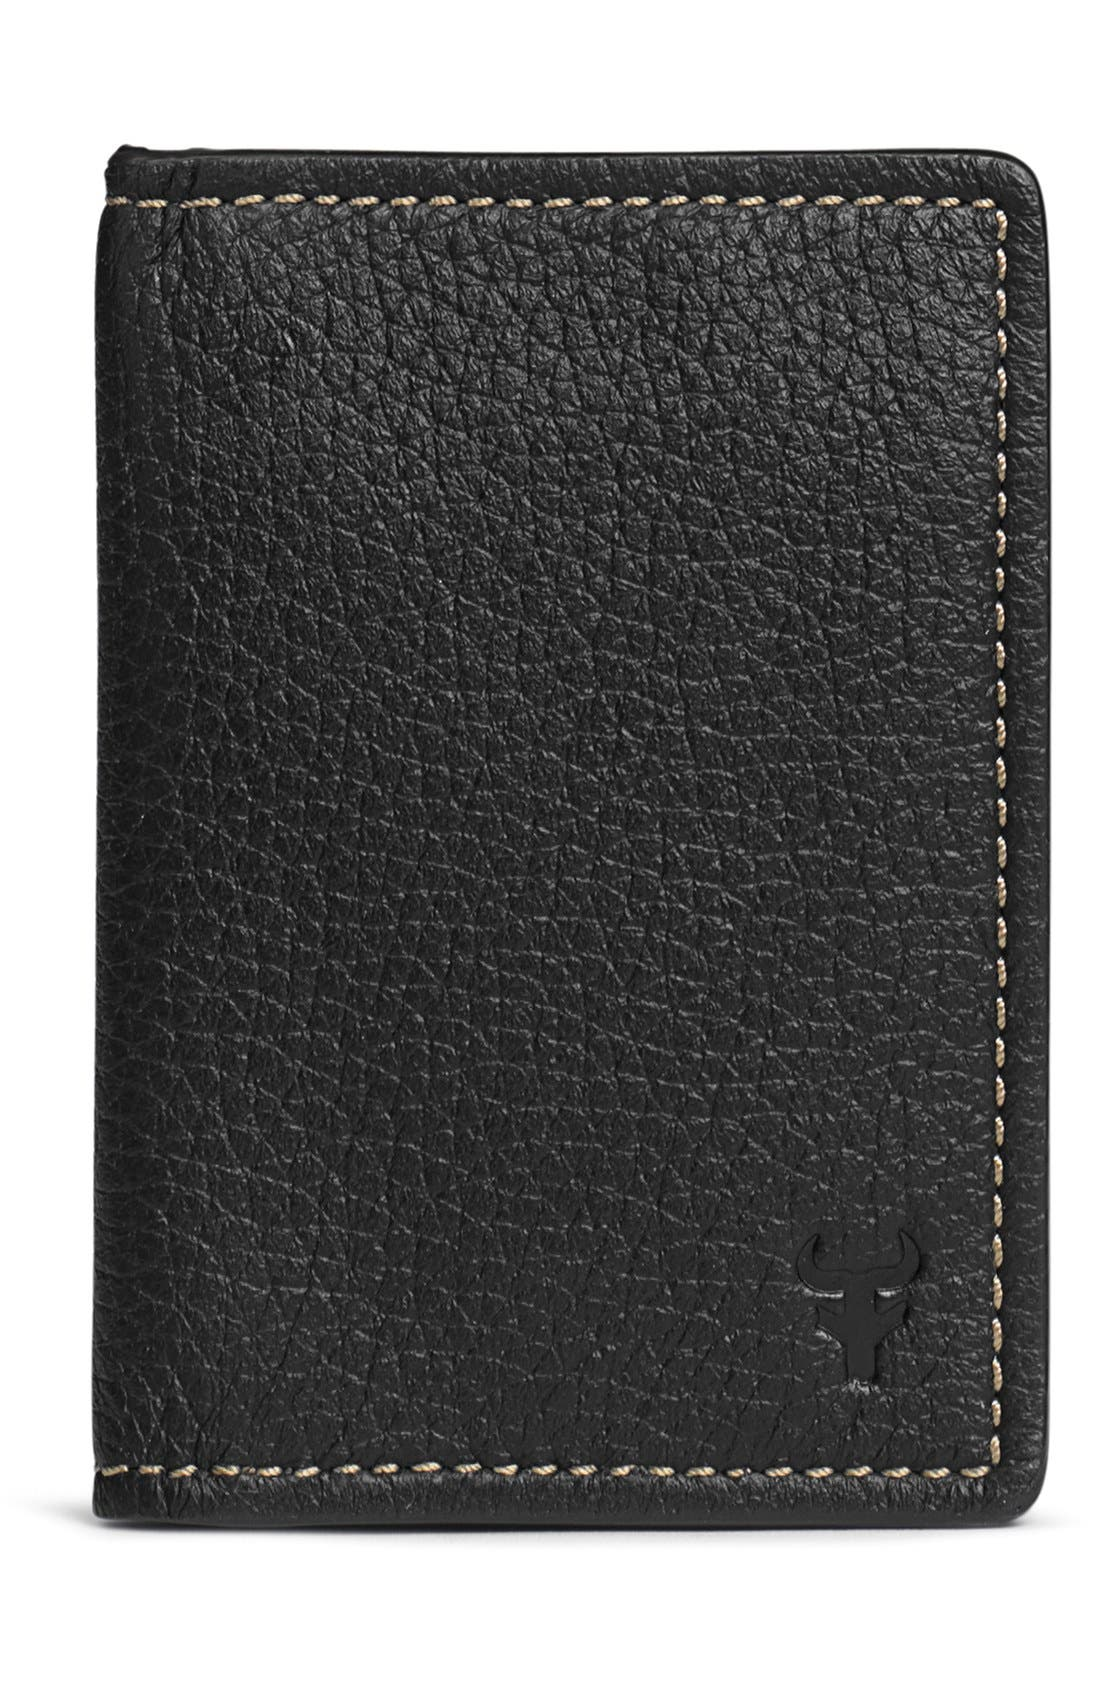 TRASK Jackson Folding Card Case